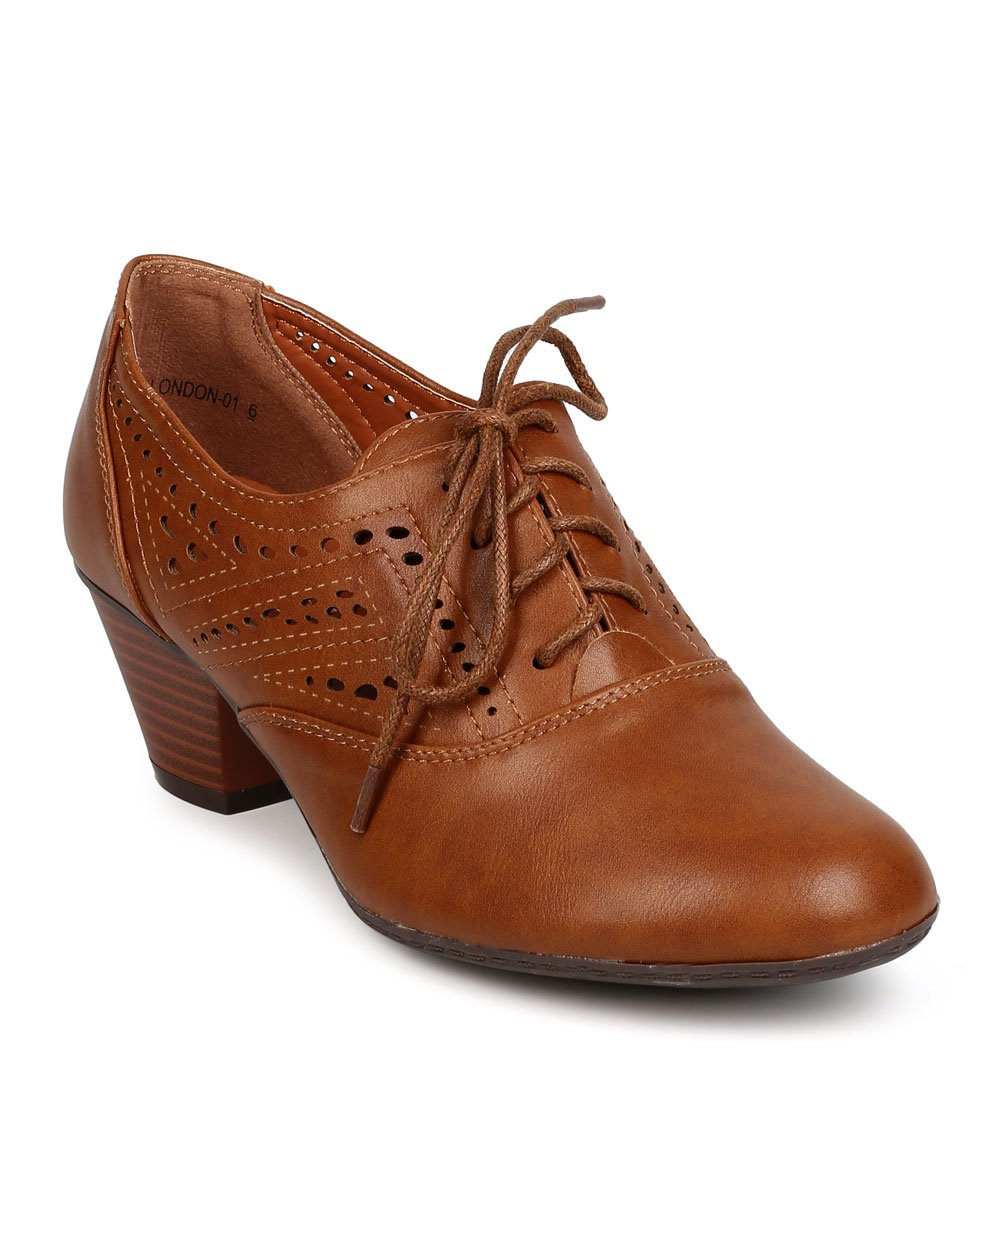 Women Leatherette Lace Up Perforated Chunky Heel Oxford Bootie FC20 - Tan (Size: 6.0)